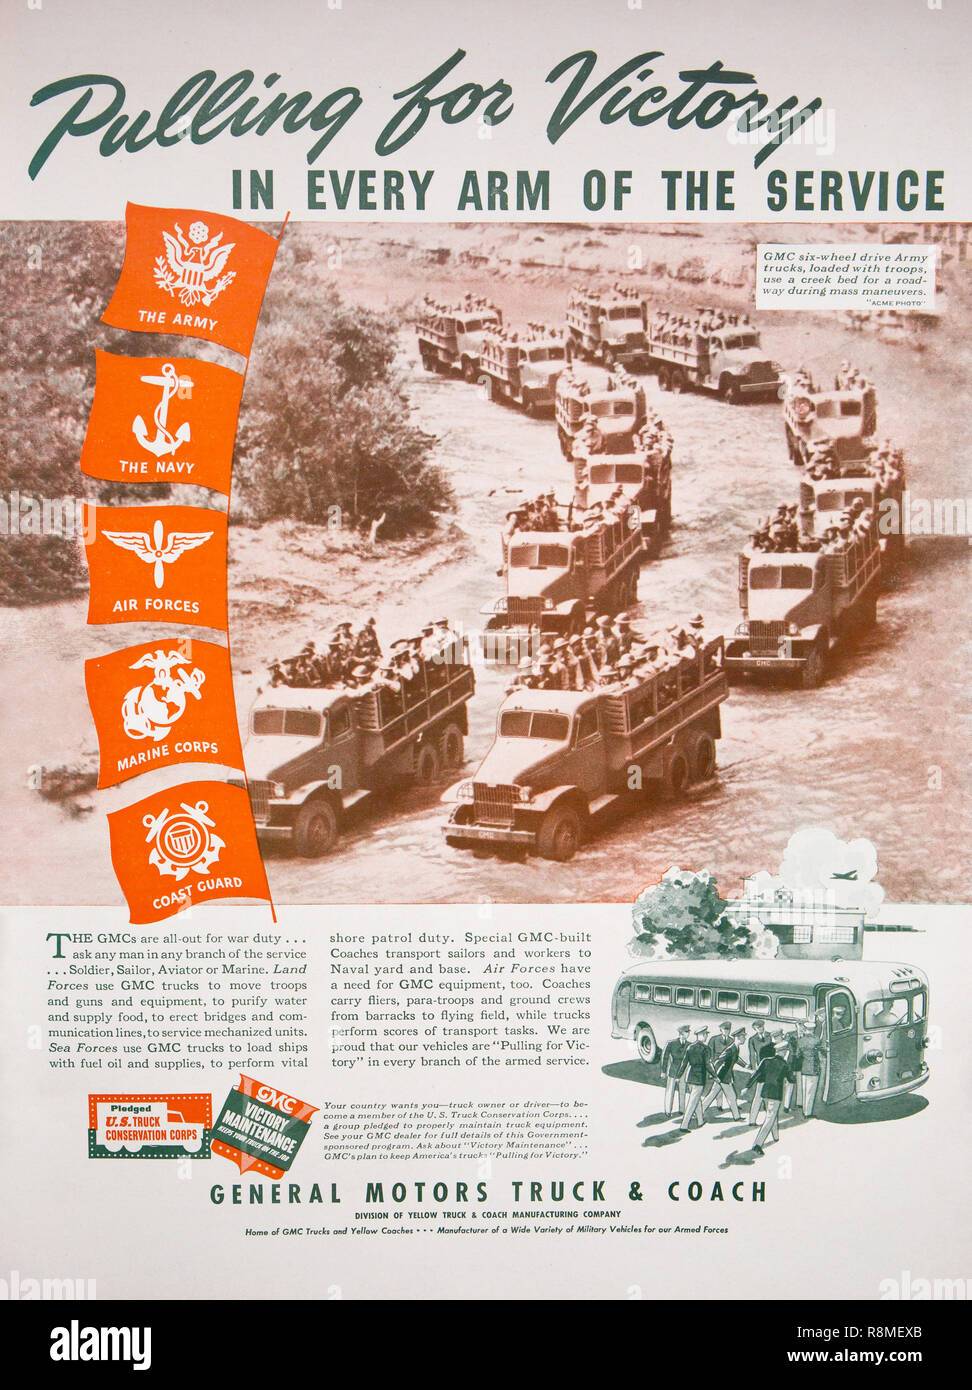 Magazine advertising by General Motors highlighting its contributions of vehicles to winning World War II. - Stock Image